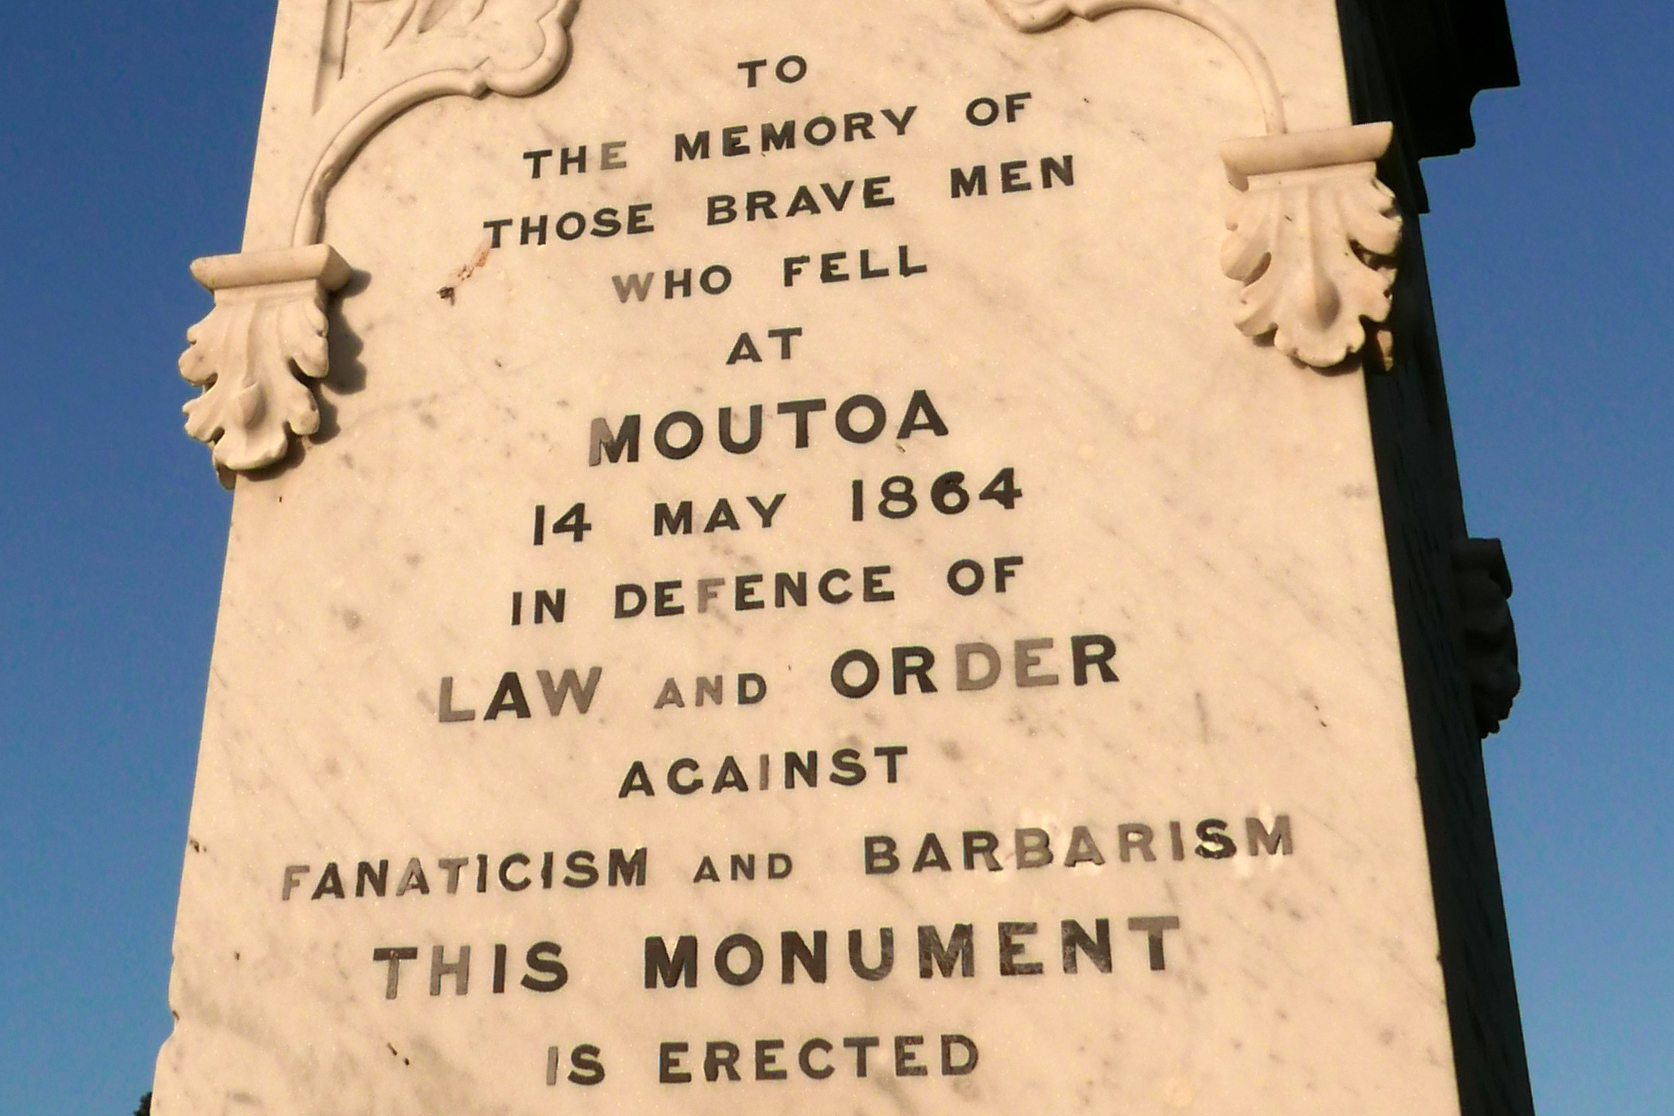 The memorial at Moutoa Gardens, Whanganui commemorates the 'brave men who fell at Moutoa.. against fanaticism and barbarism. Picture: supplied